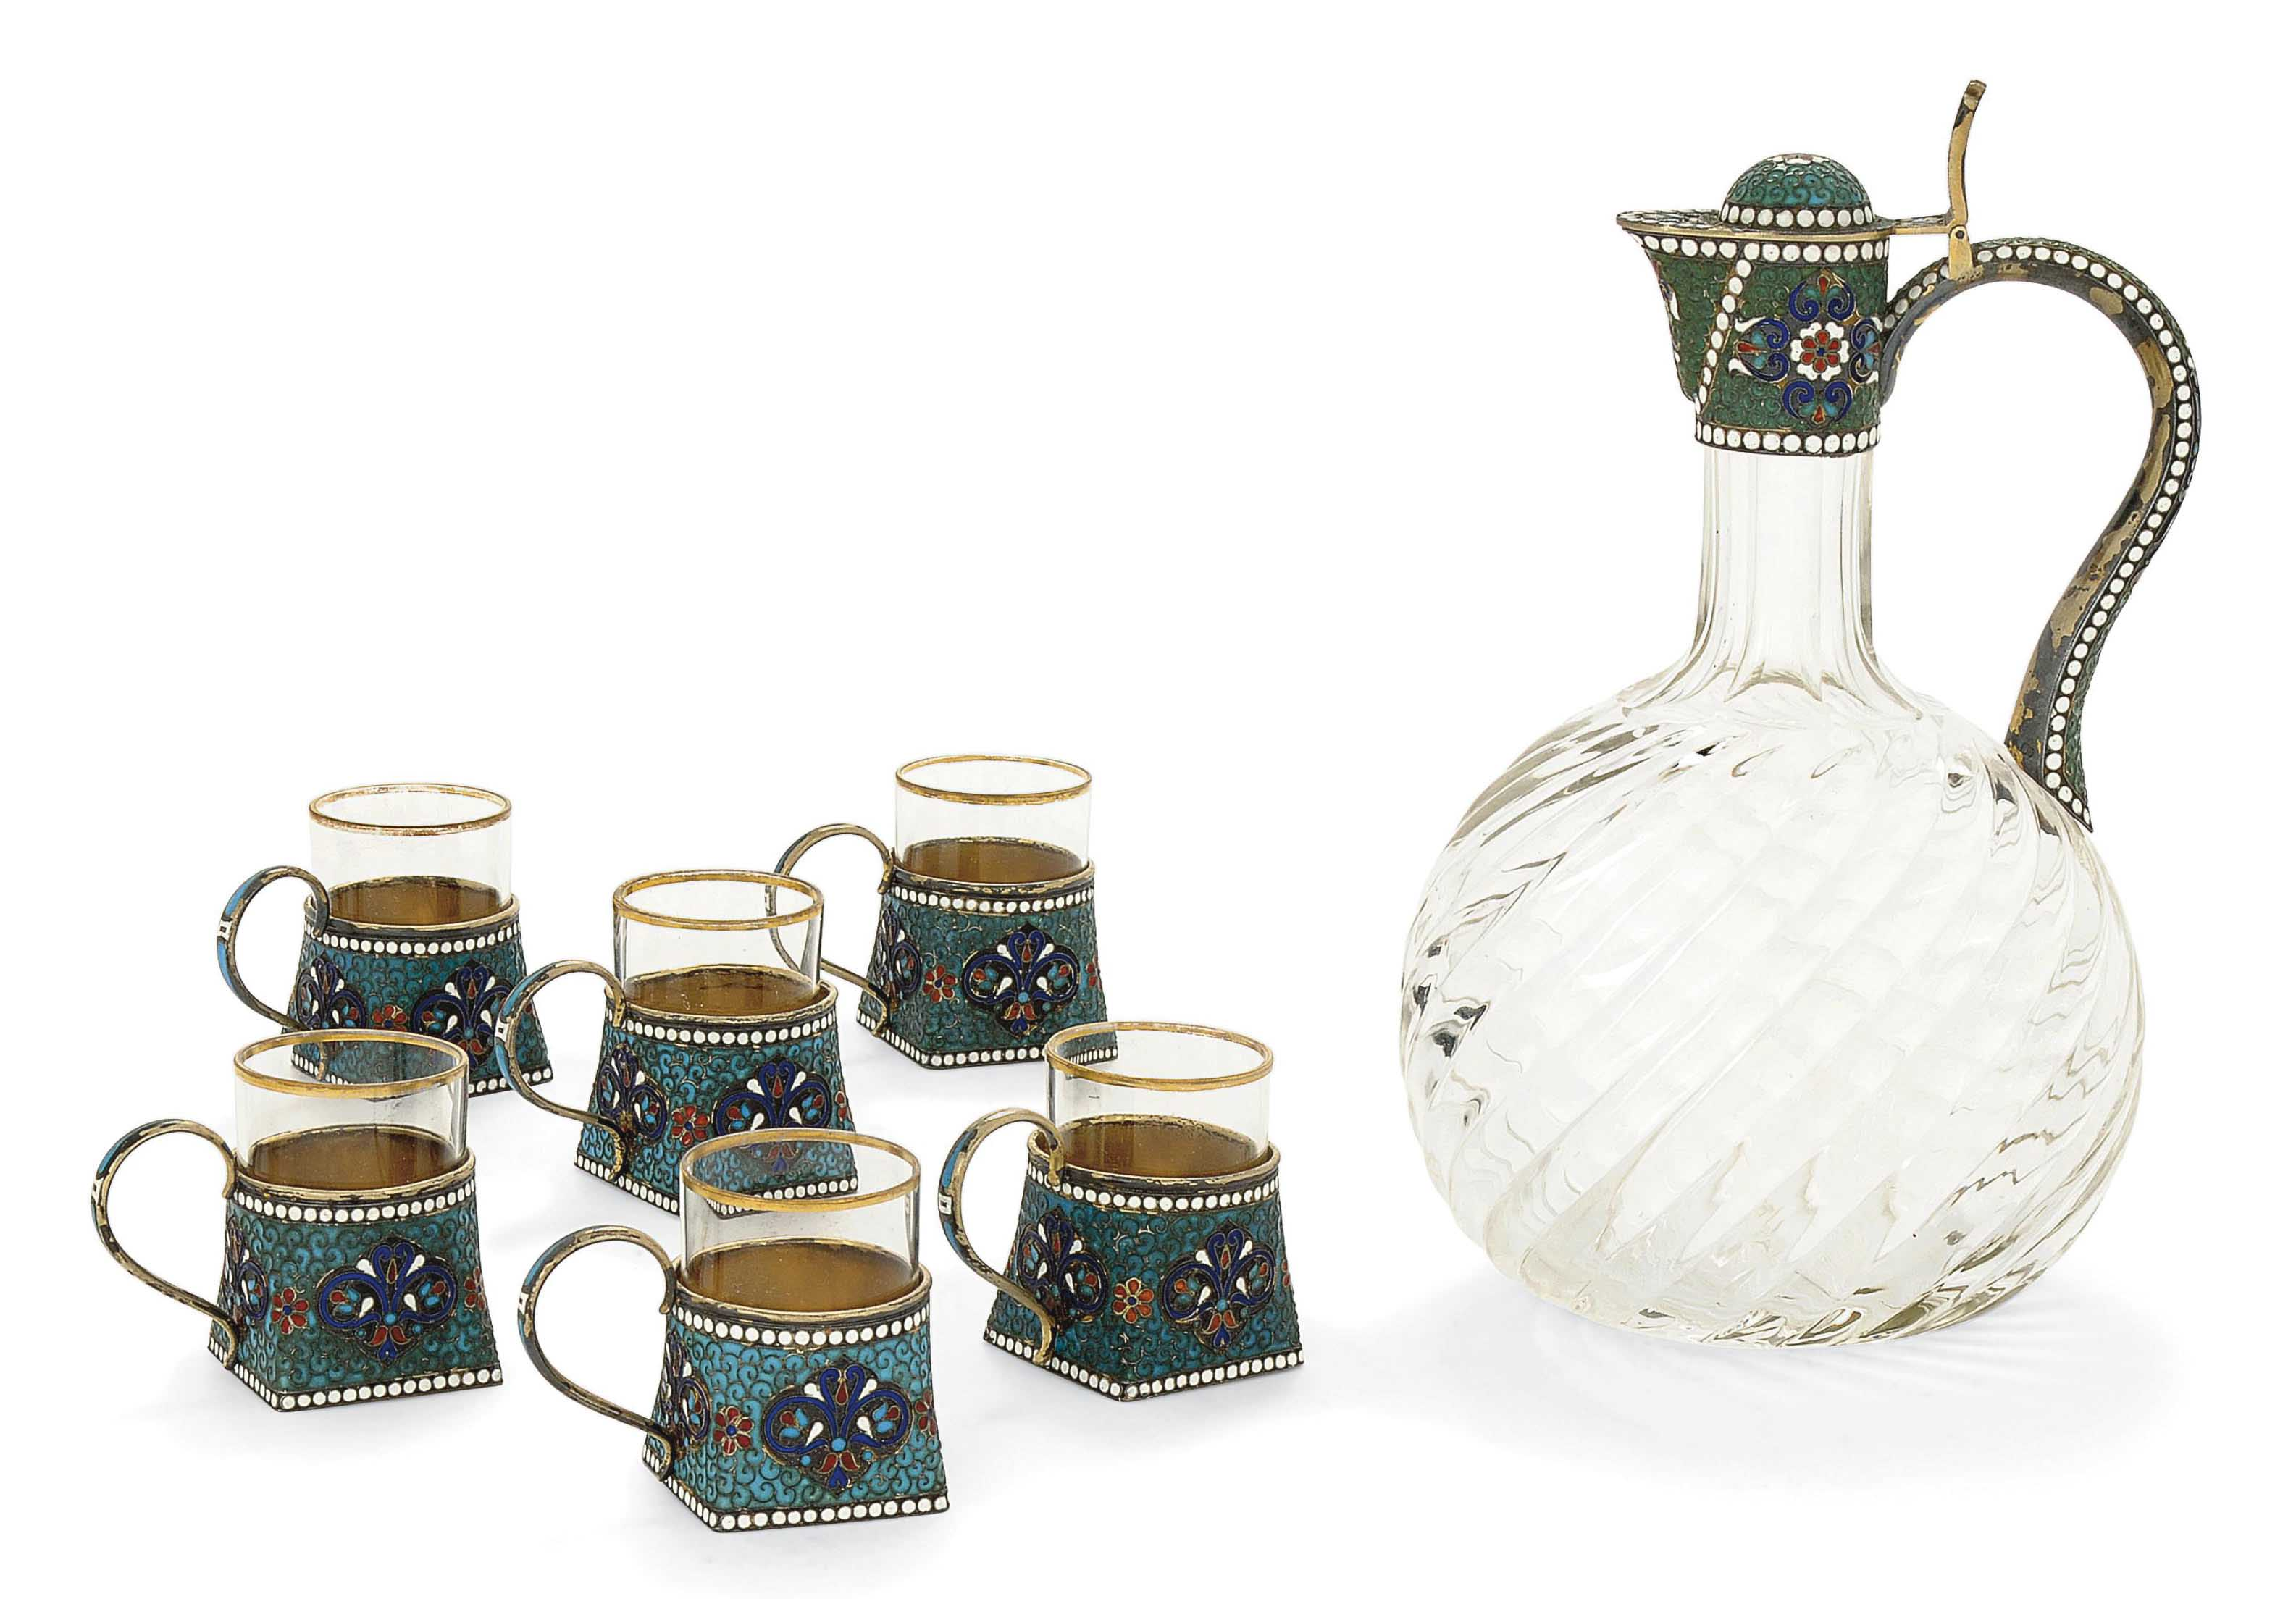 A RUSSIAN SILVER-GILT AND CLOISONNE ENAMEL VODKA JUG WITH 6 VODKA CUPS EN SUITE